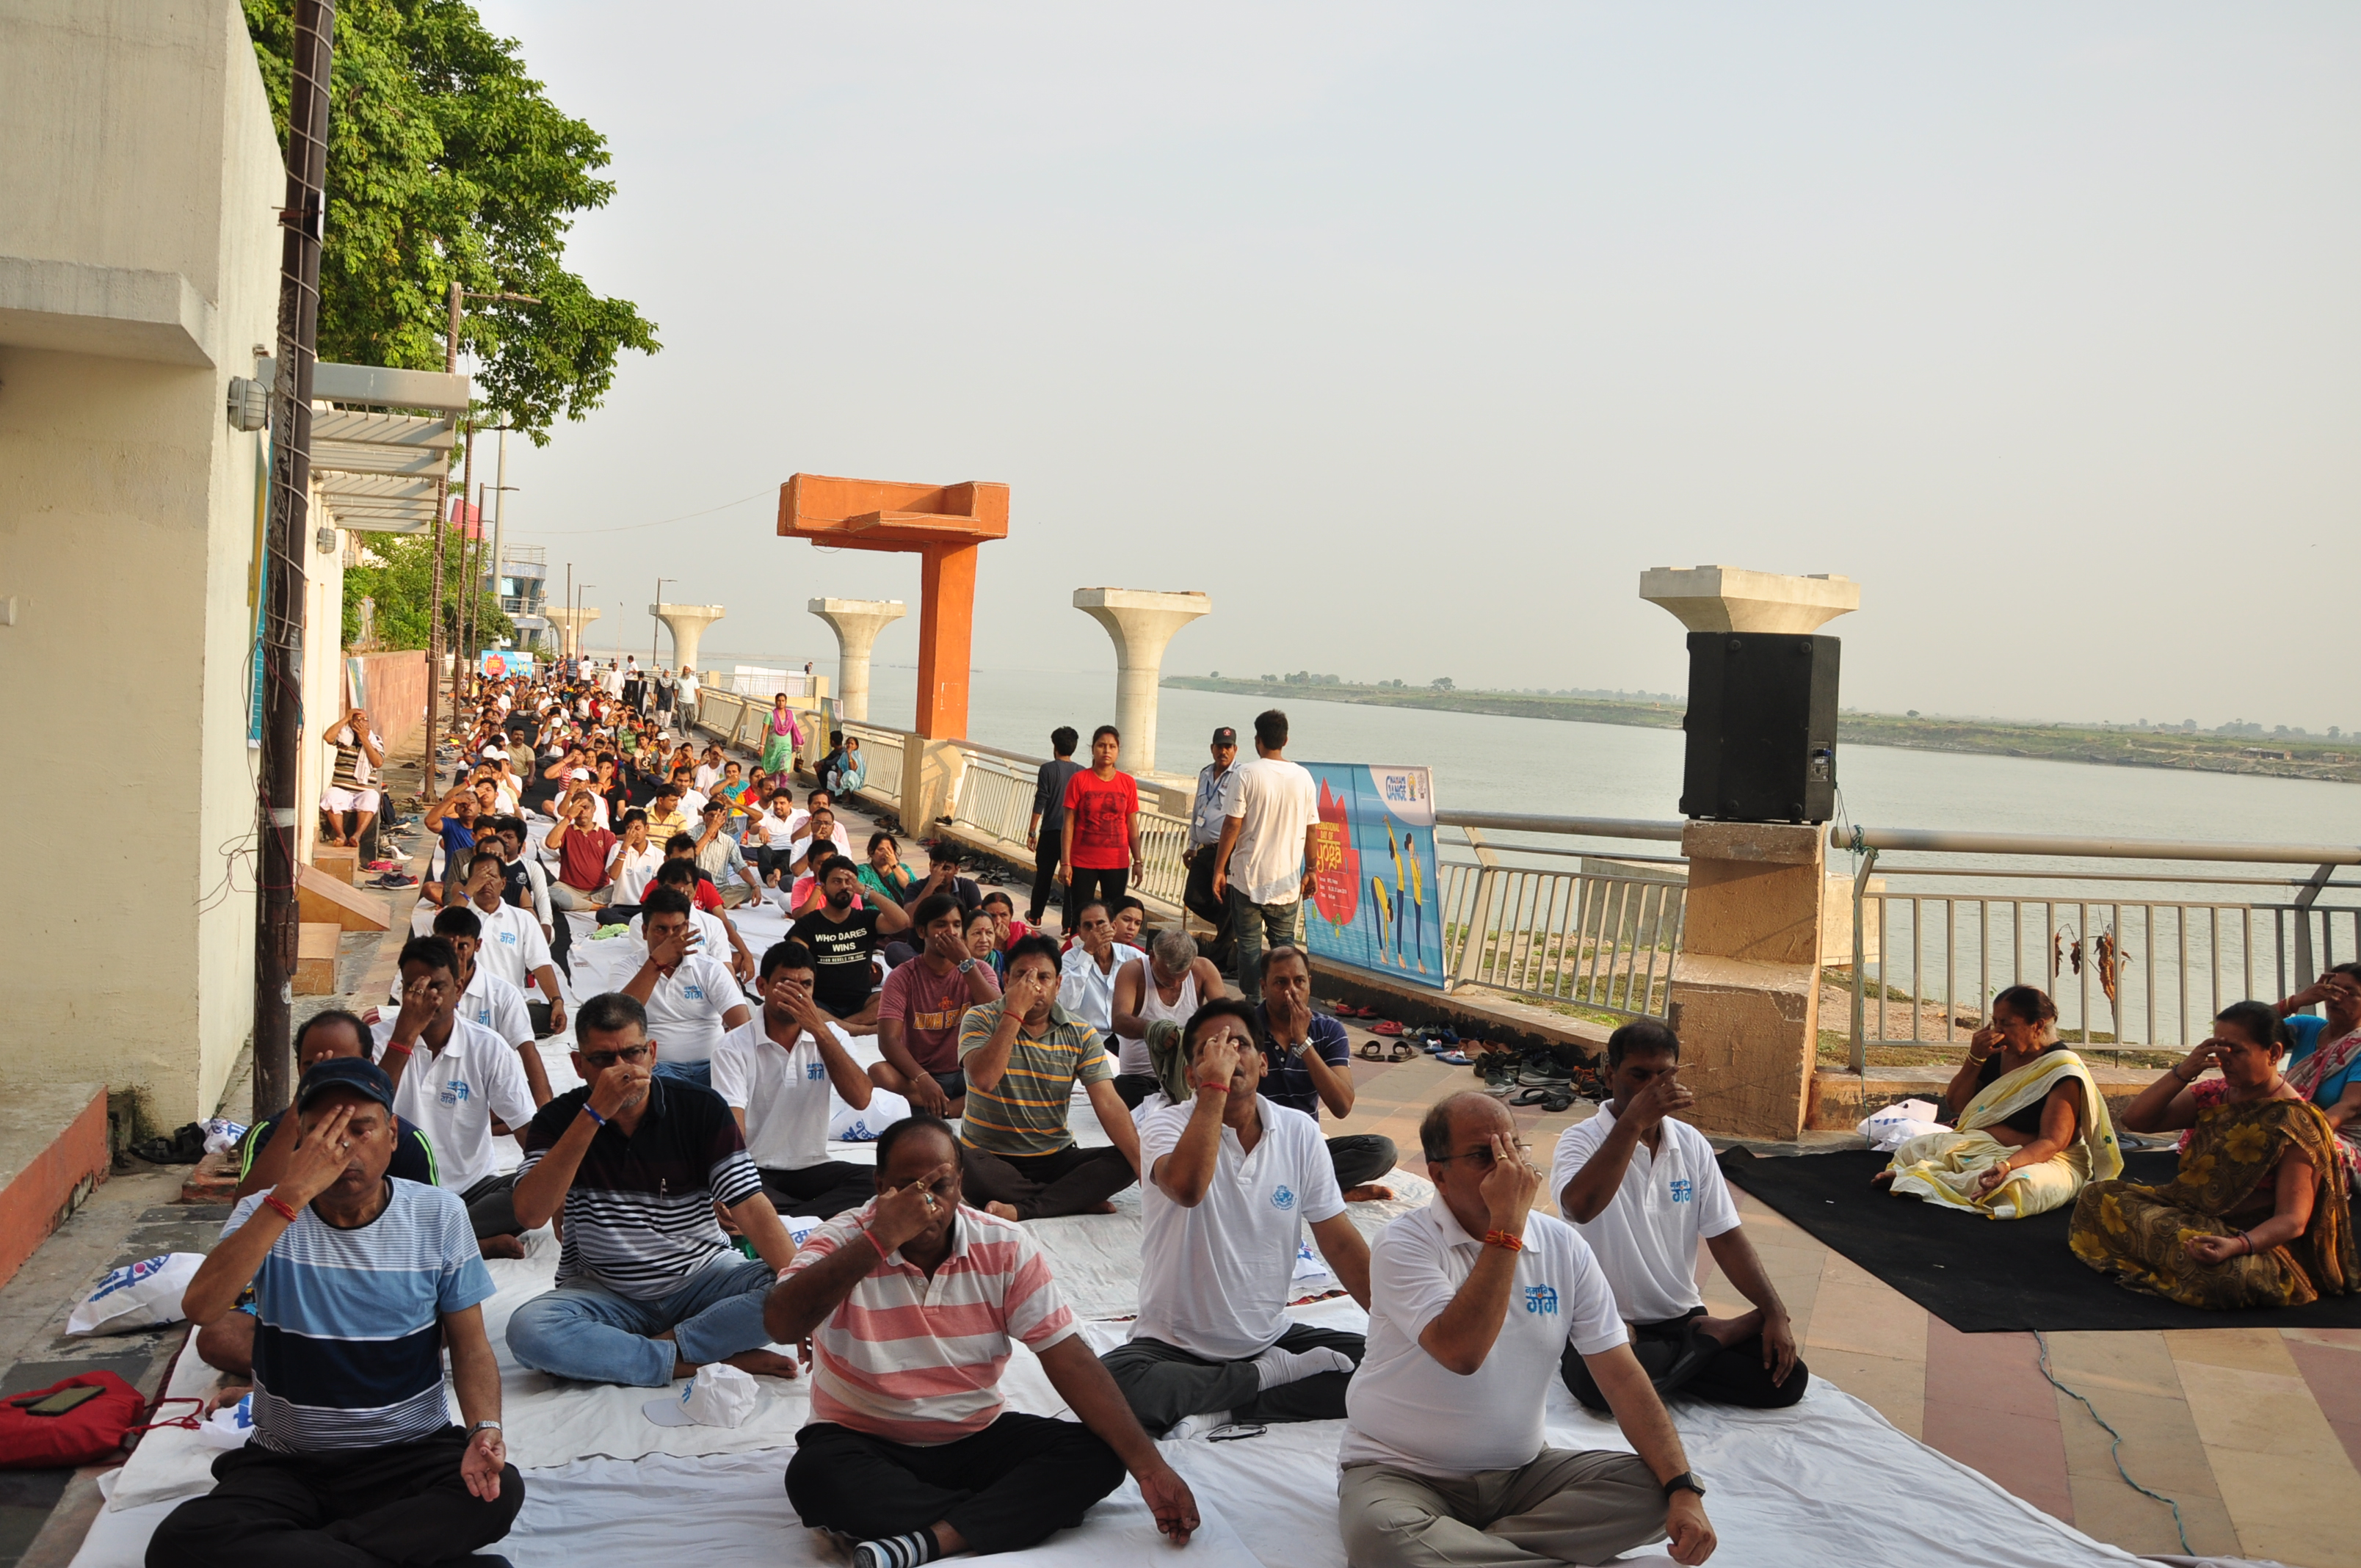 Diverse public space uses along Patna Riverfront, India. Photo by NMCG.